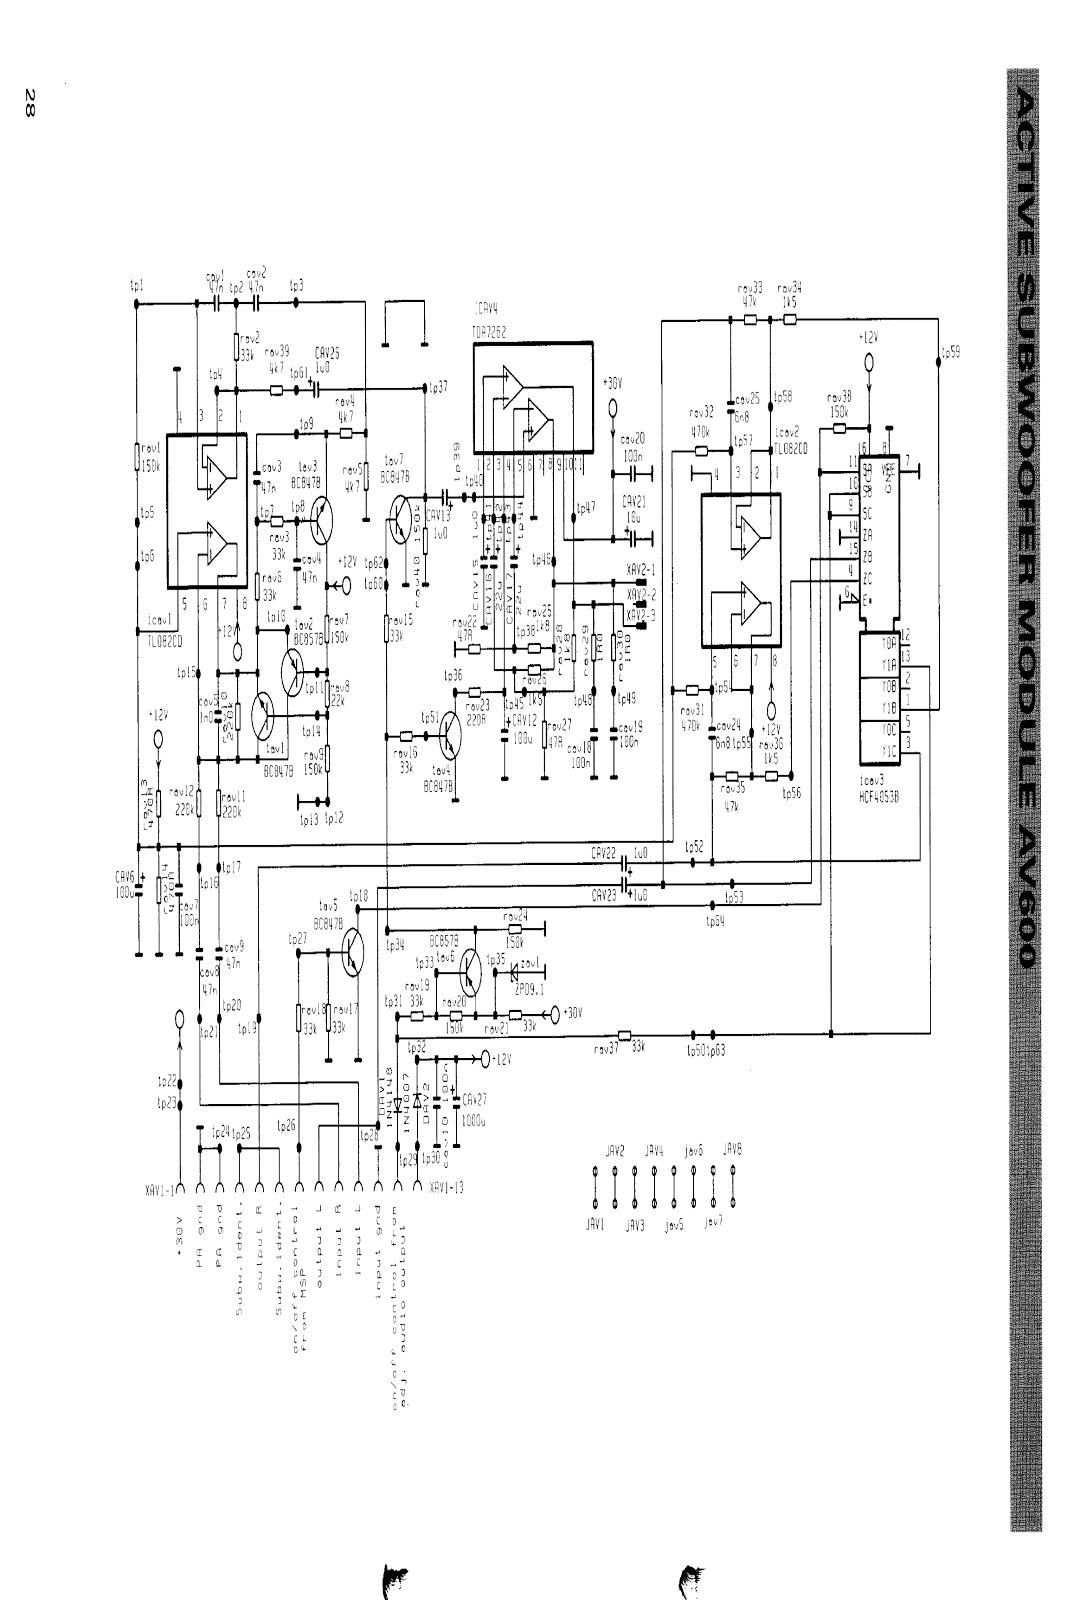 Crt Schematic Diagram Great Design Of Wiring Toshiba Tv Get Free Image About Samsung